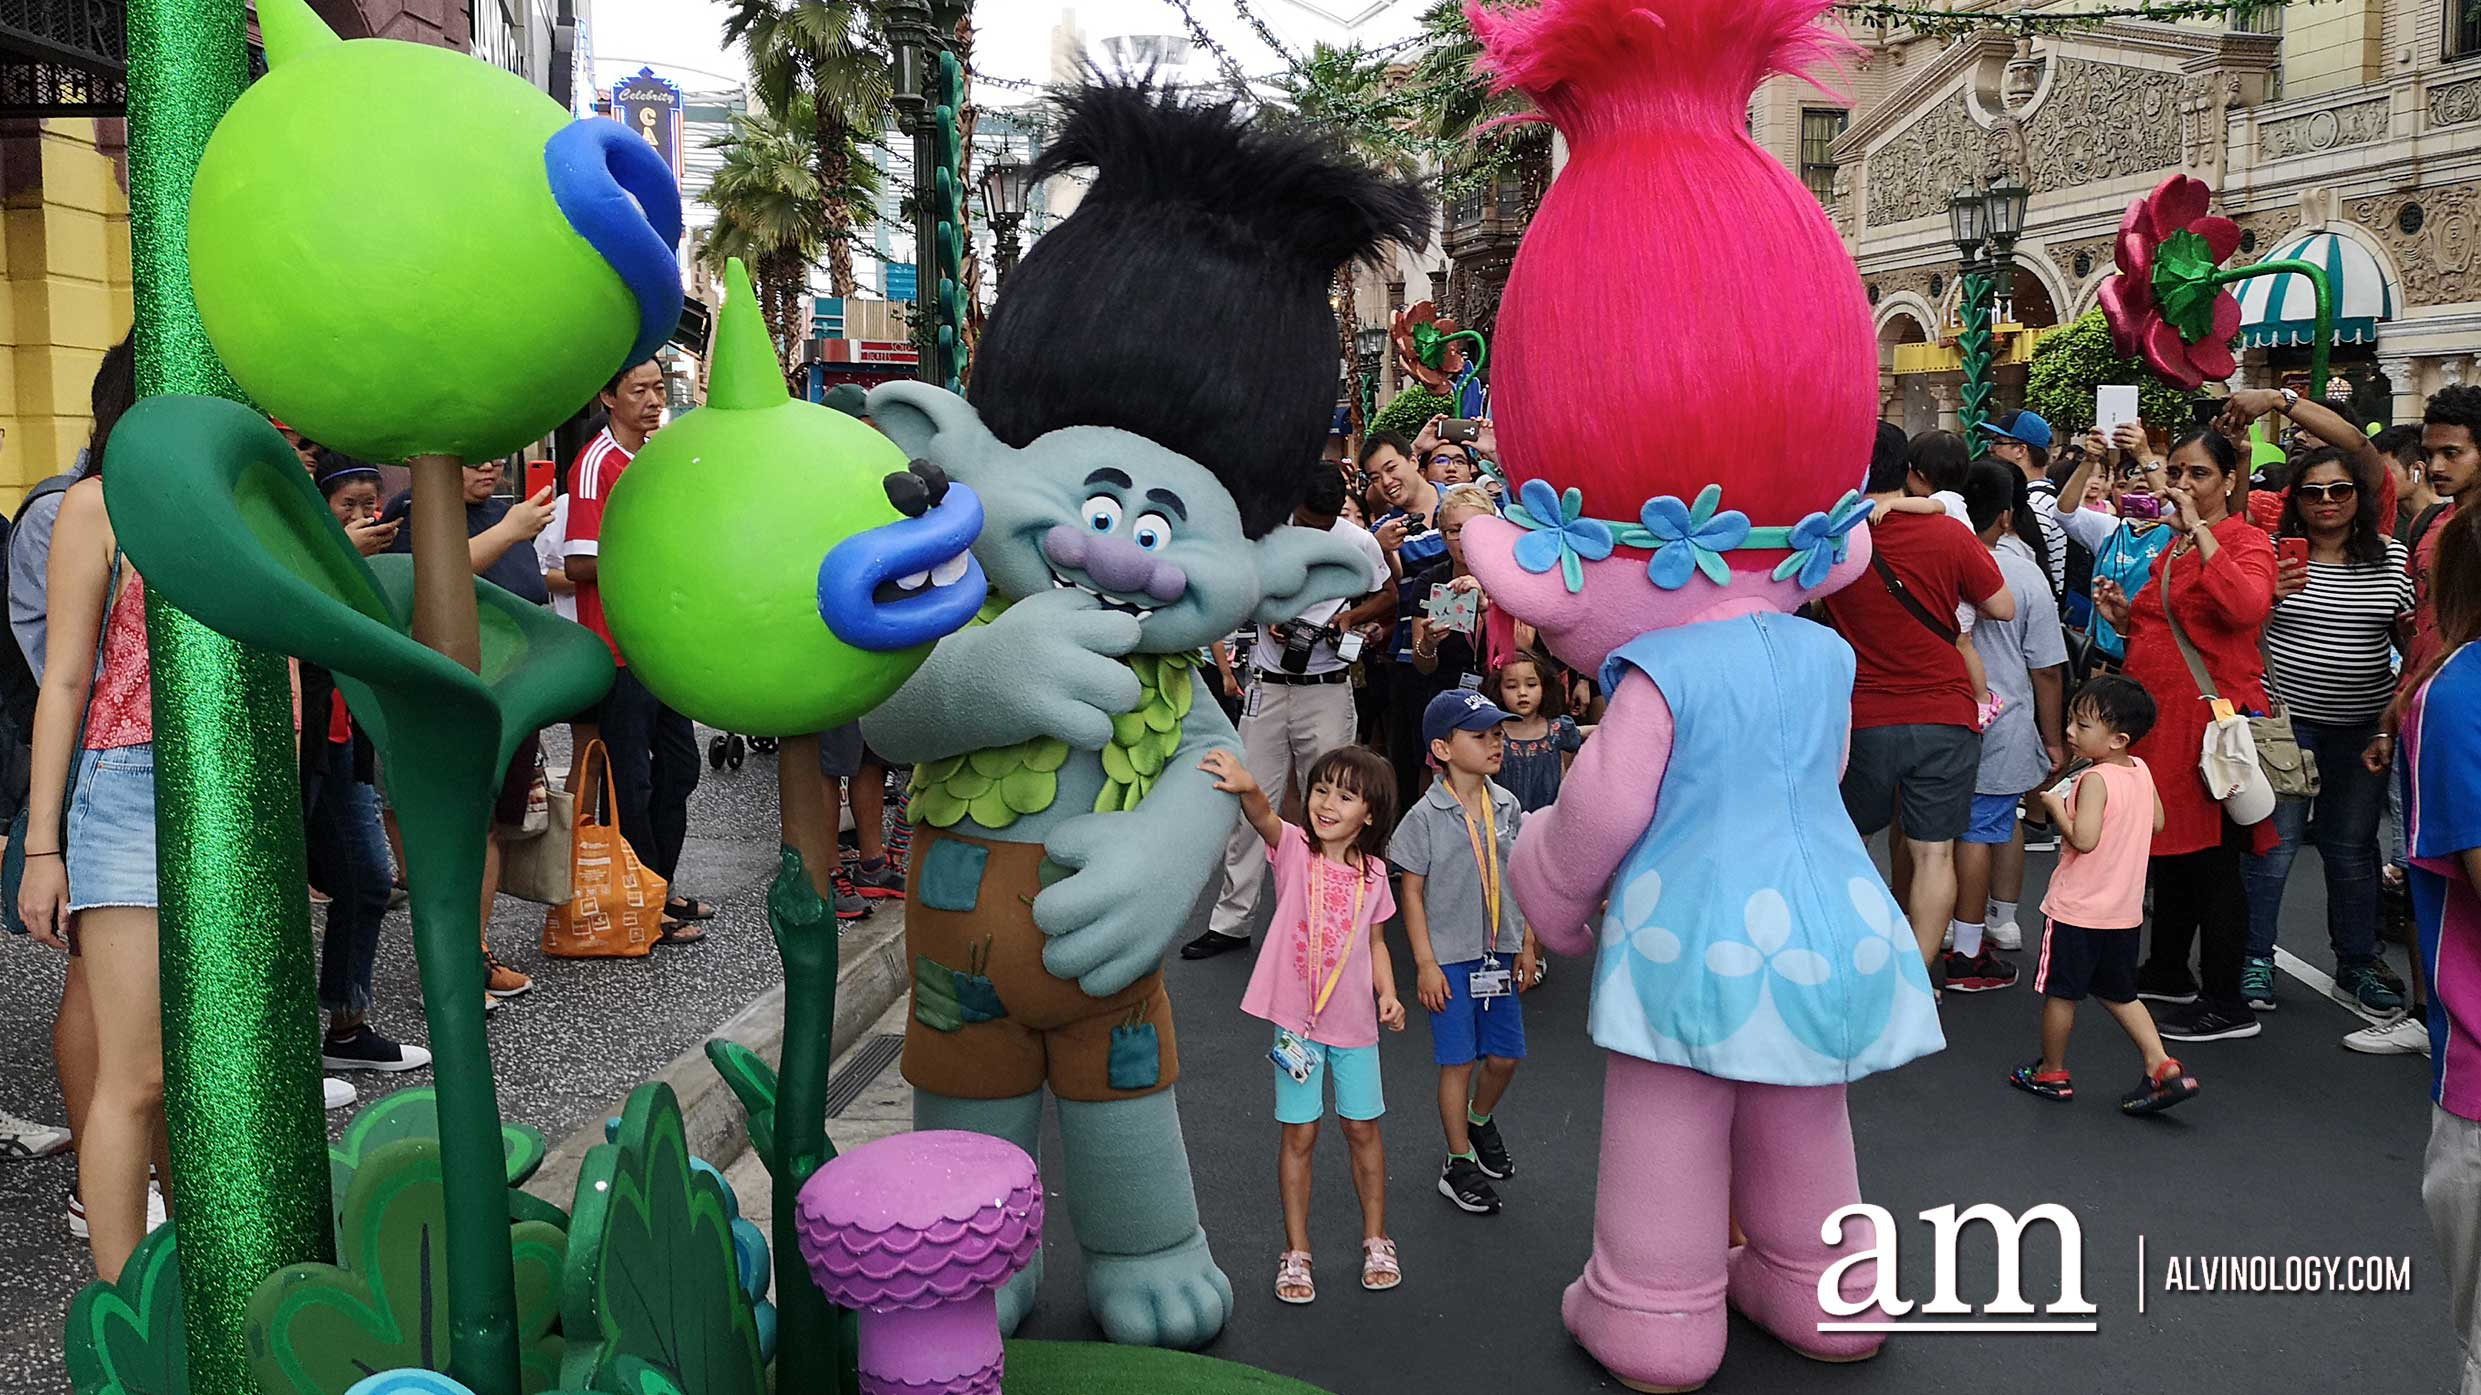 The Trolls have invaded Universal Studios Singapore to create a TrollsTopia - Alvinology